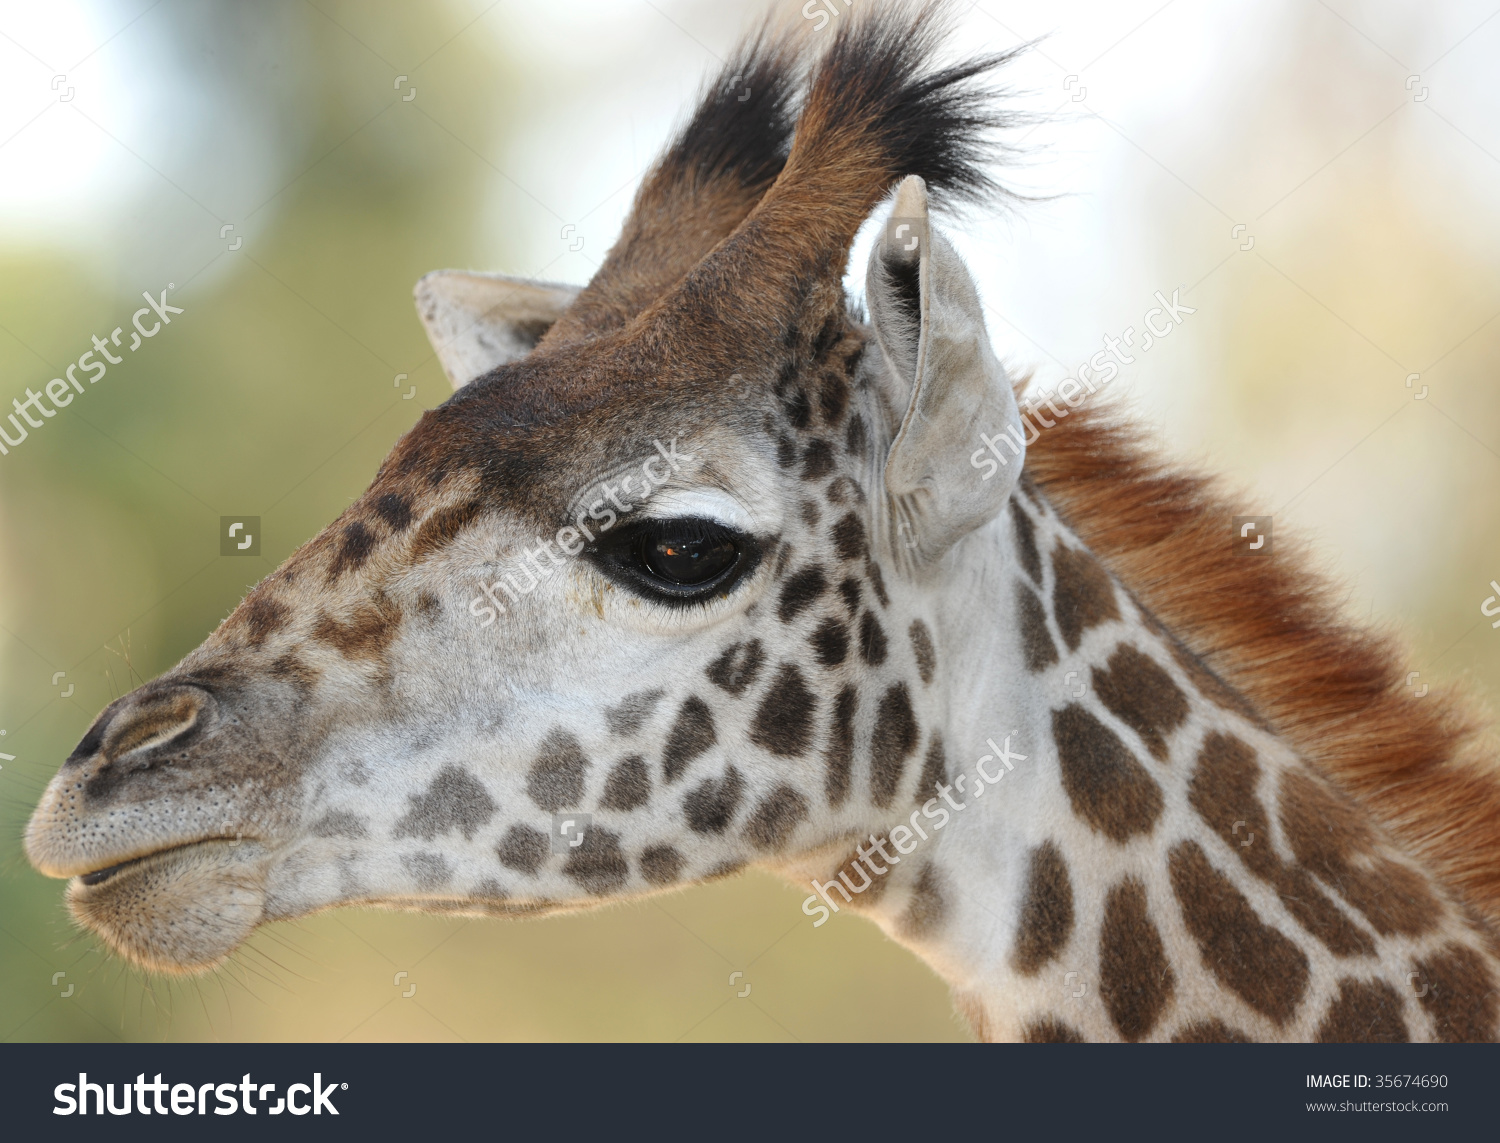 Baby Reticulated Giraffe Close Up Full Frame Head, Namibia, Africa.